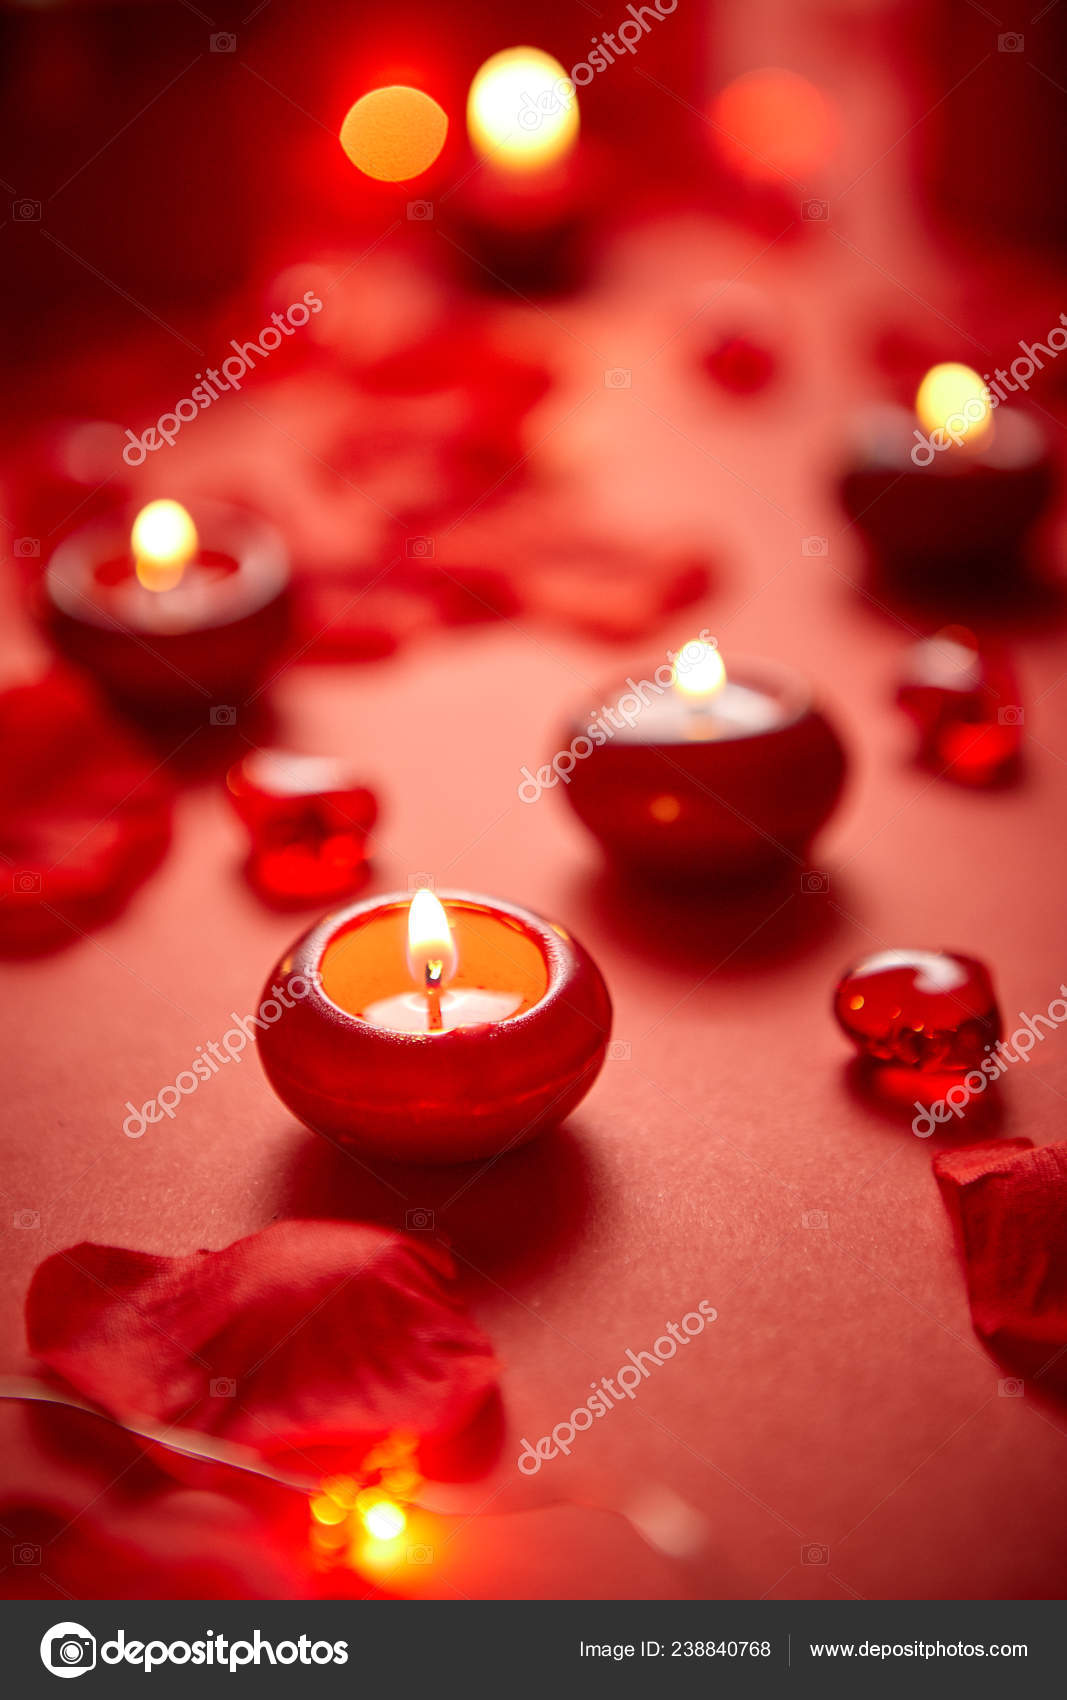 Romantic Dinner Decoration Red Candles Flower Petals On The Table Stock Photo C Dashek 238840768